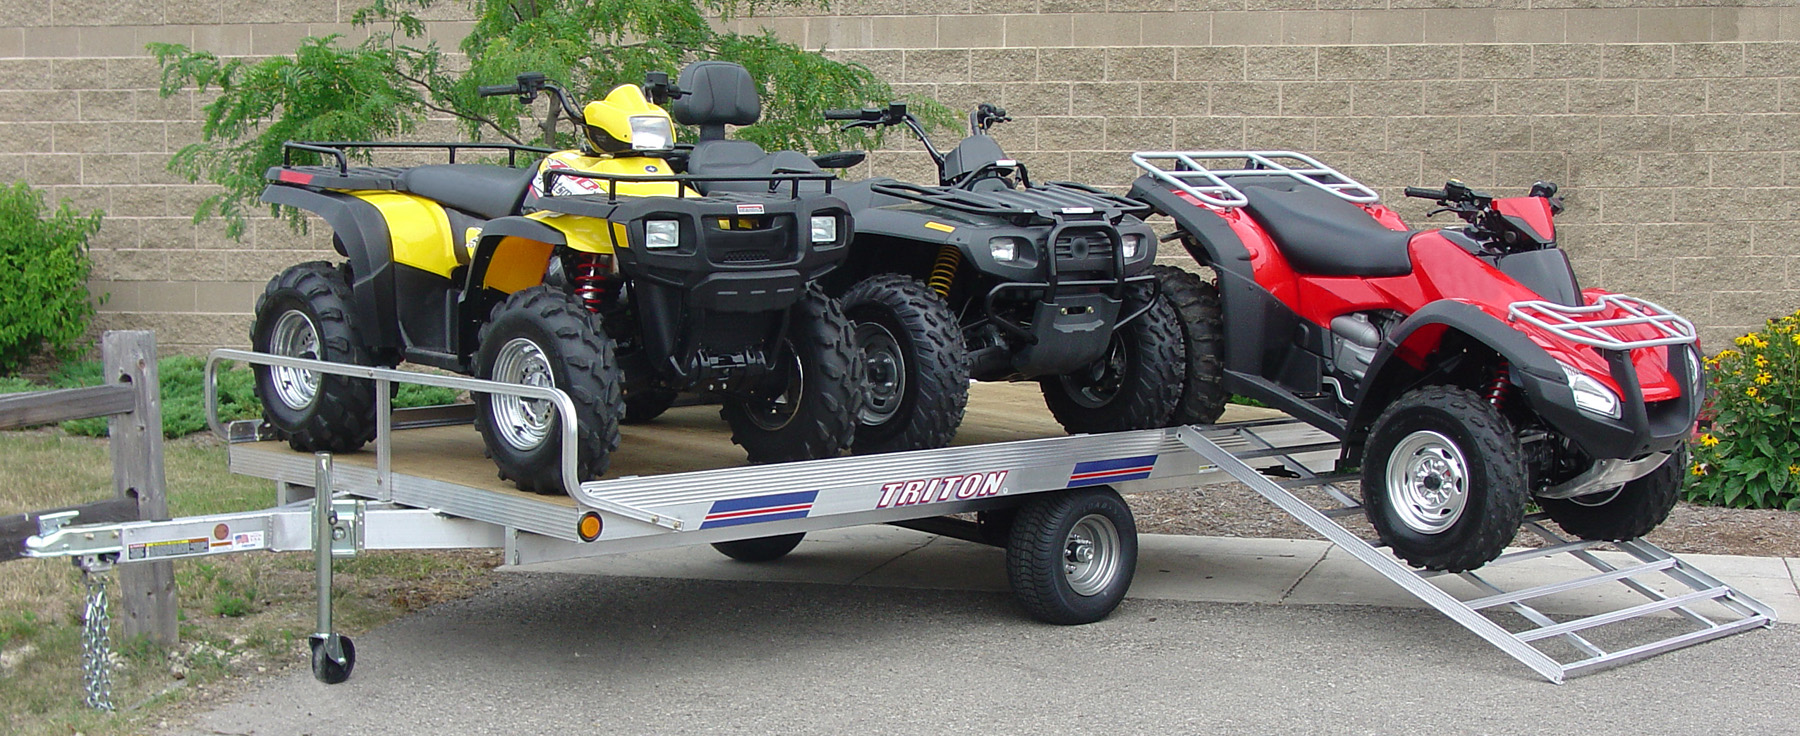 Aluminum Motorcycle Ramp Models ATV88 and ATV128 are Triton's most popular ATV trailers ...